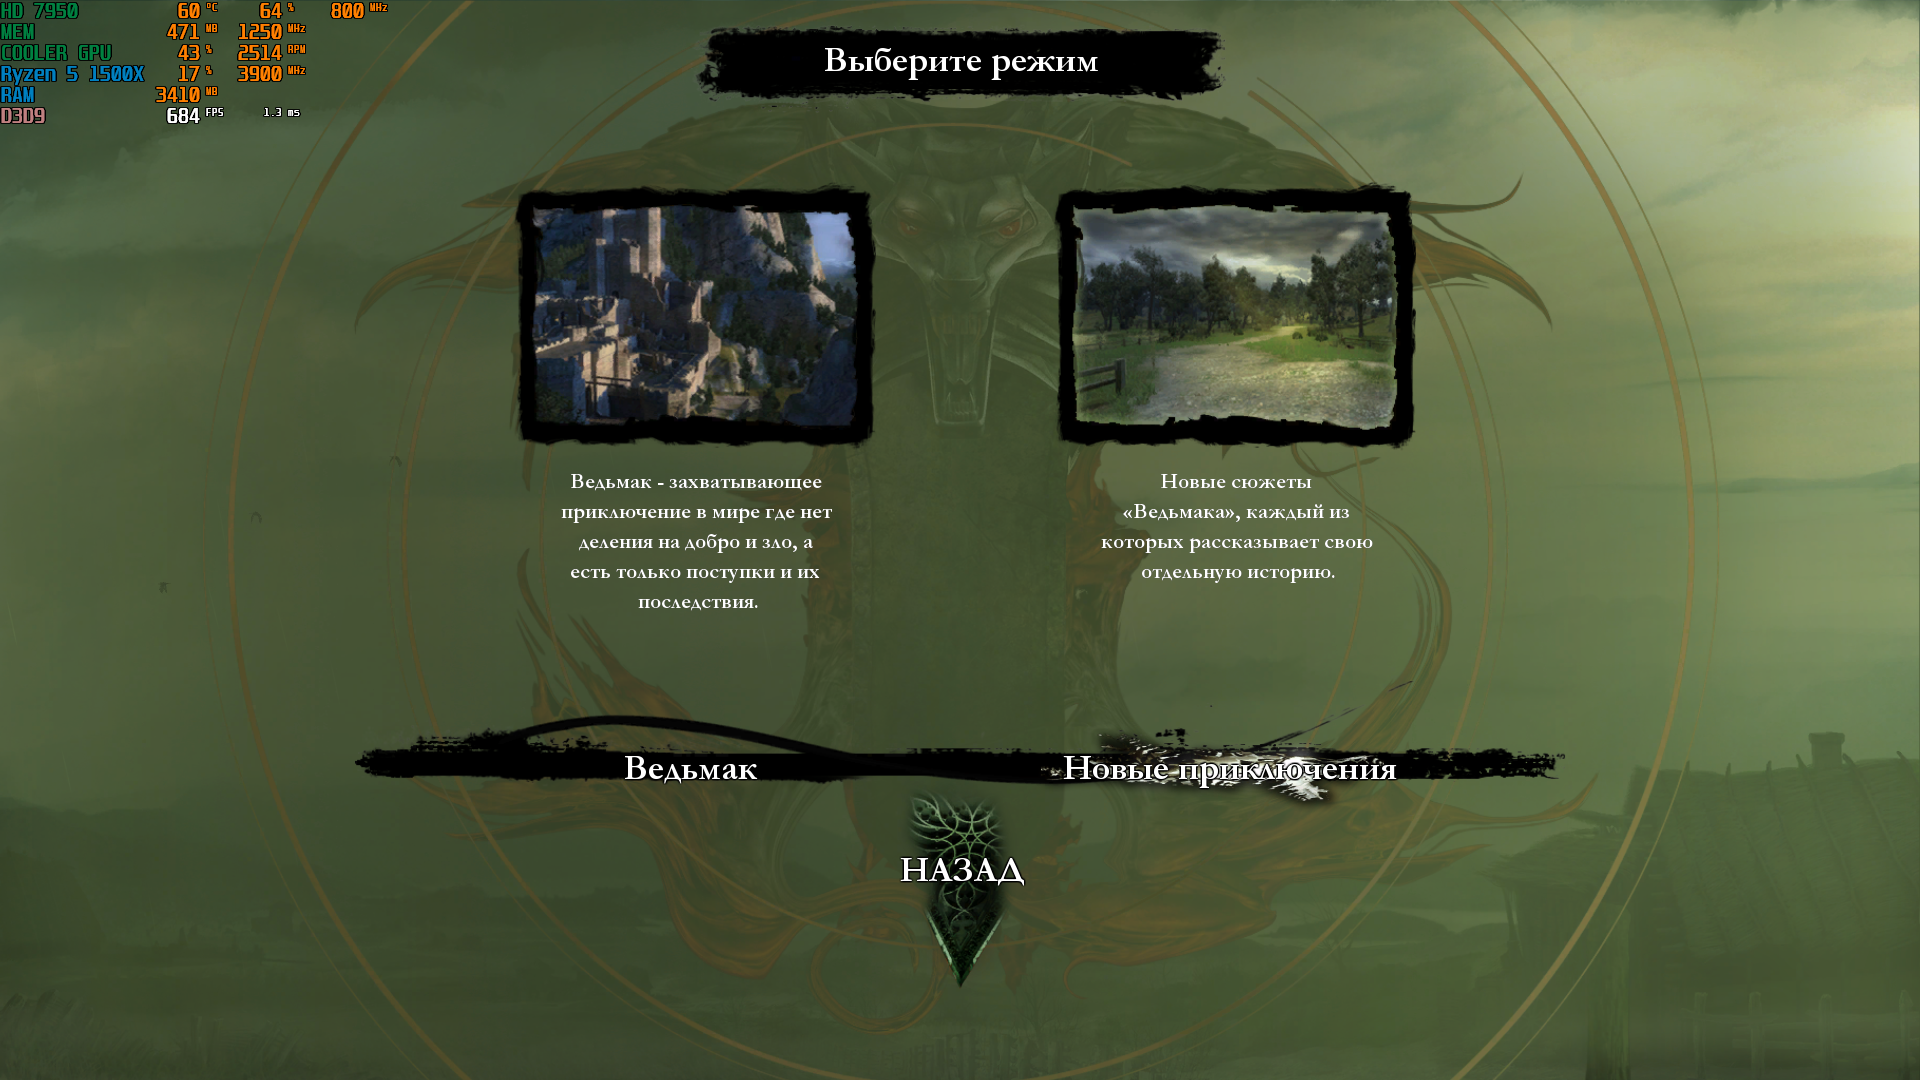 witcher_2018_07_20_00_14_26_532.png - Witcher, the